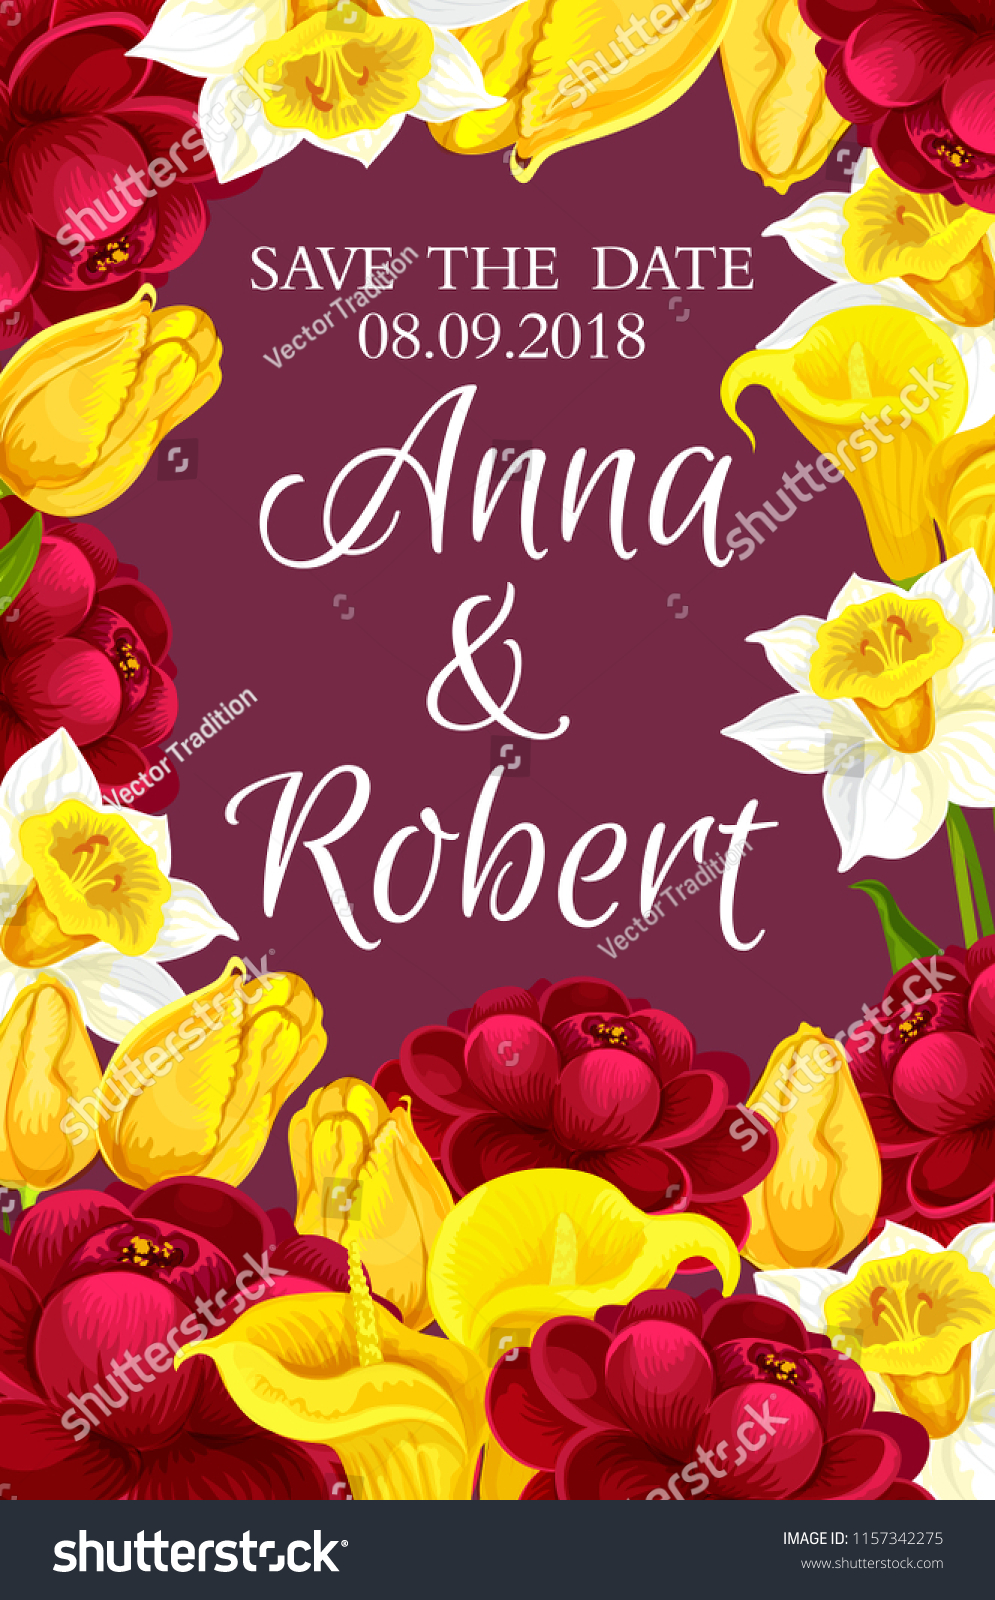 Wedding Invitation Floral Frame Save Date Stock Vector (Royalty Free ...